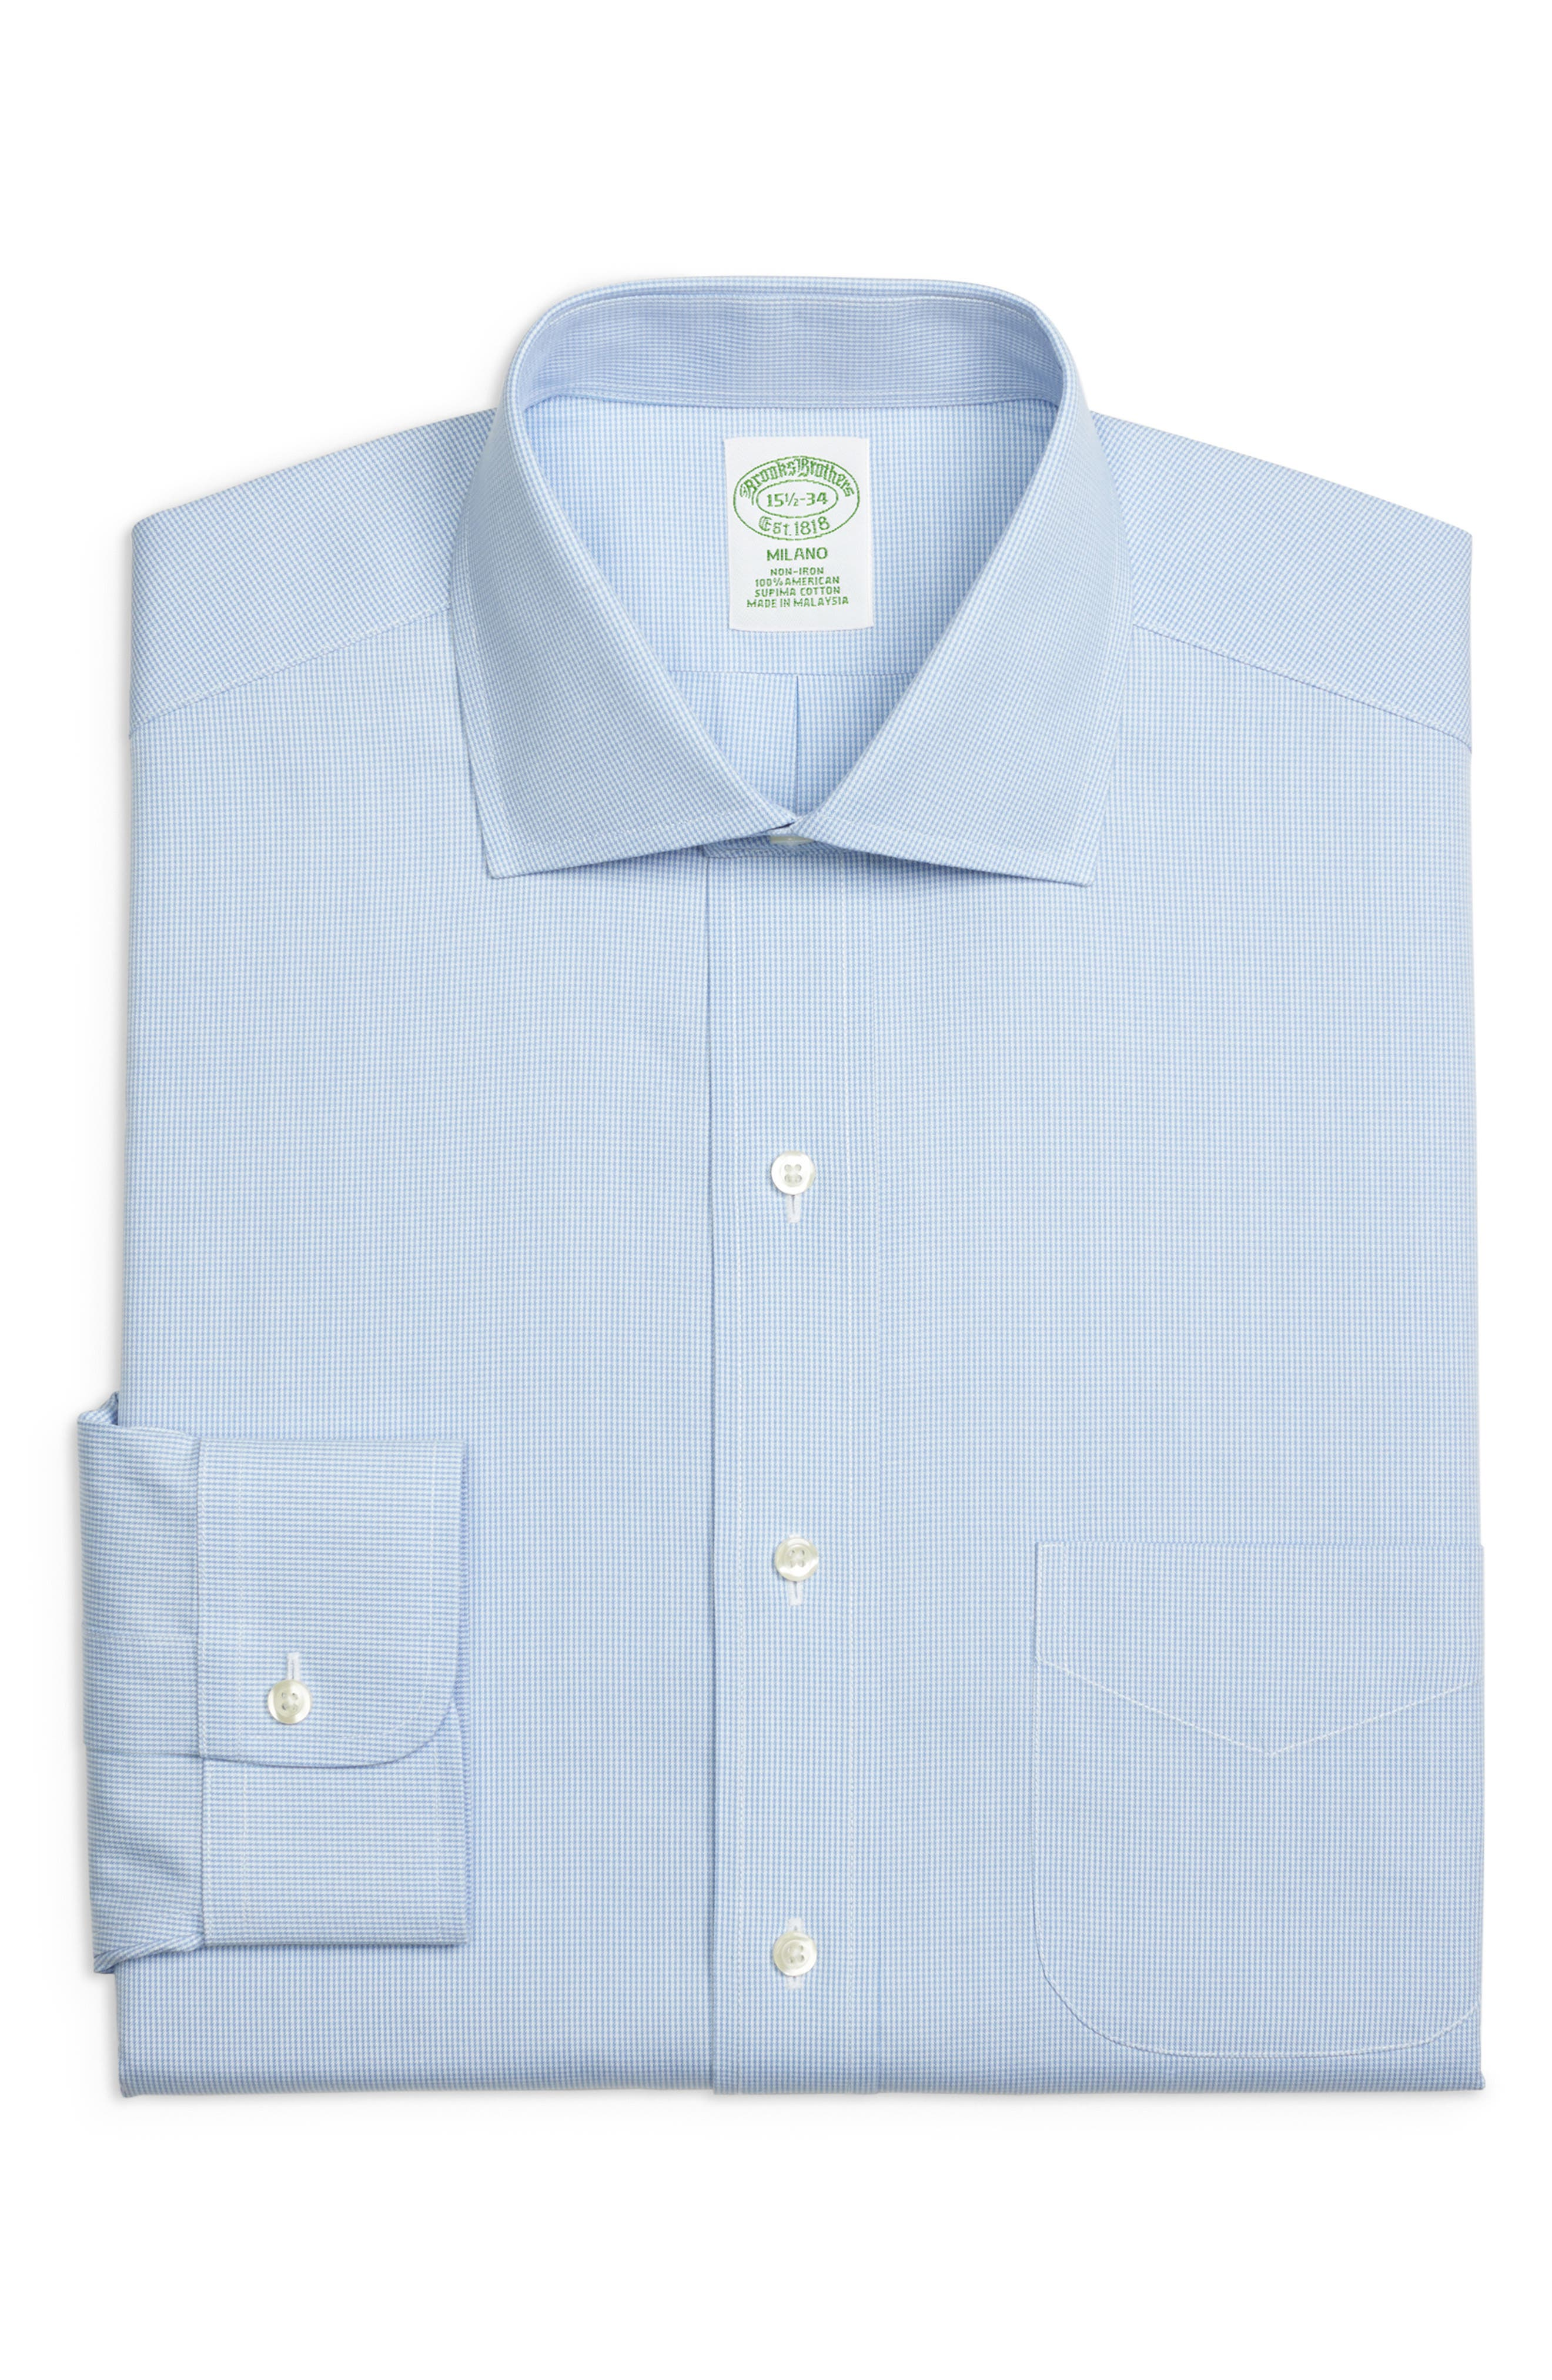 Trim Fit Houndstooth Dress Shirt,                         Main,                         color, LIGHT/ PASTEL BLUE